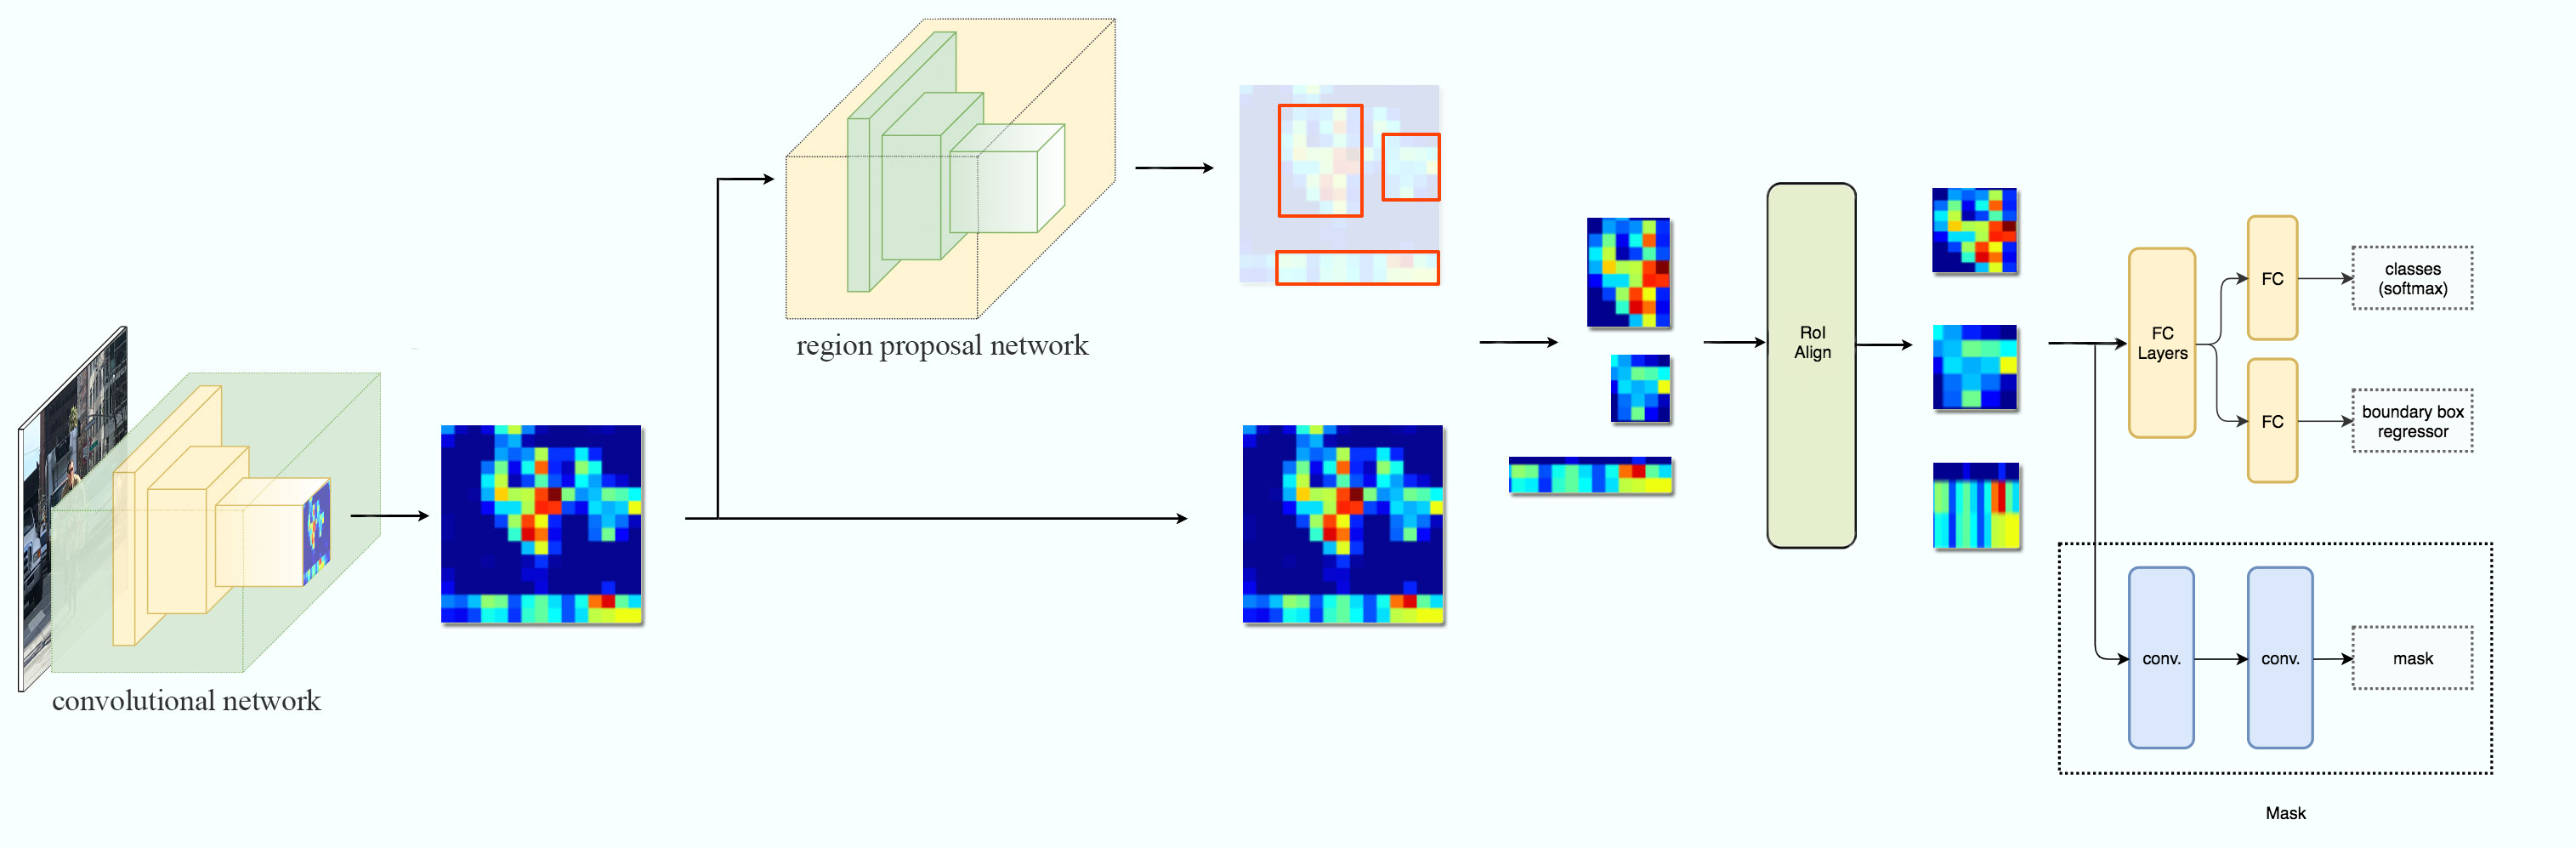 [Source:](https://medium.com/@jonathan_hui/image-segmentation-with-mask-r-cnn-ebe6d793272) Everything remains the same. Just one more output layer to predict masks and ROI pooling replaced by ROIAlign